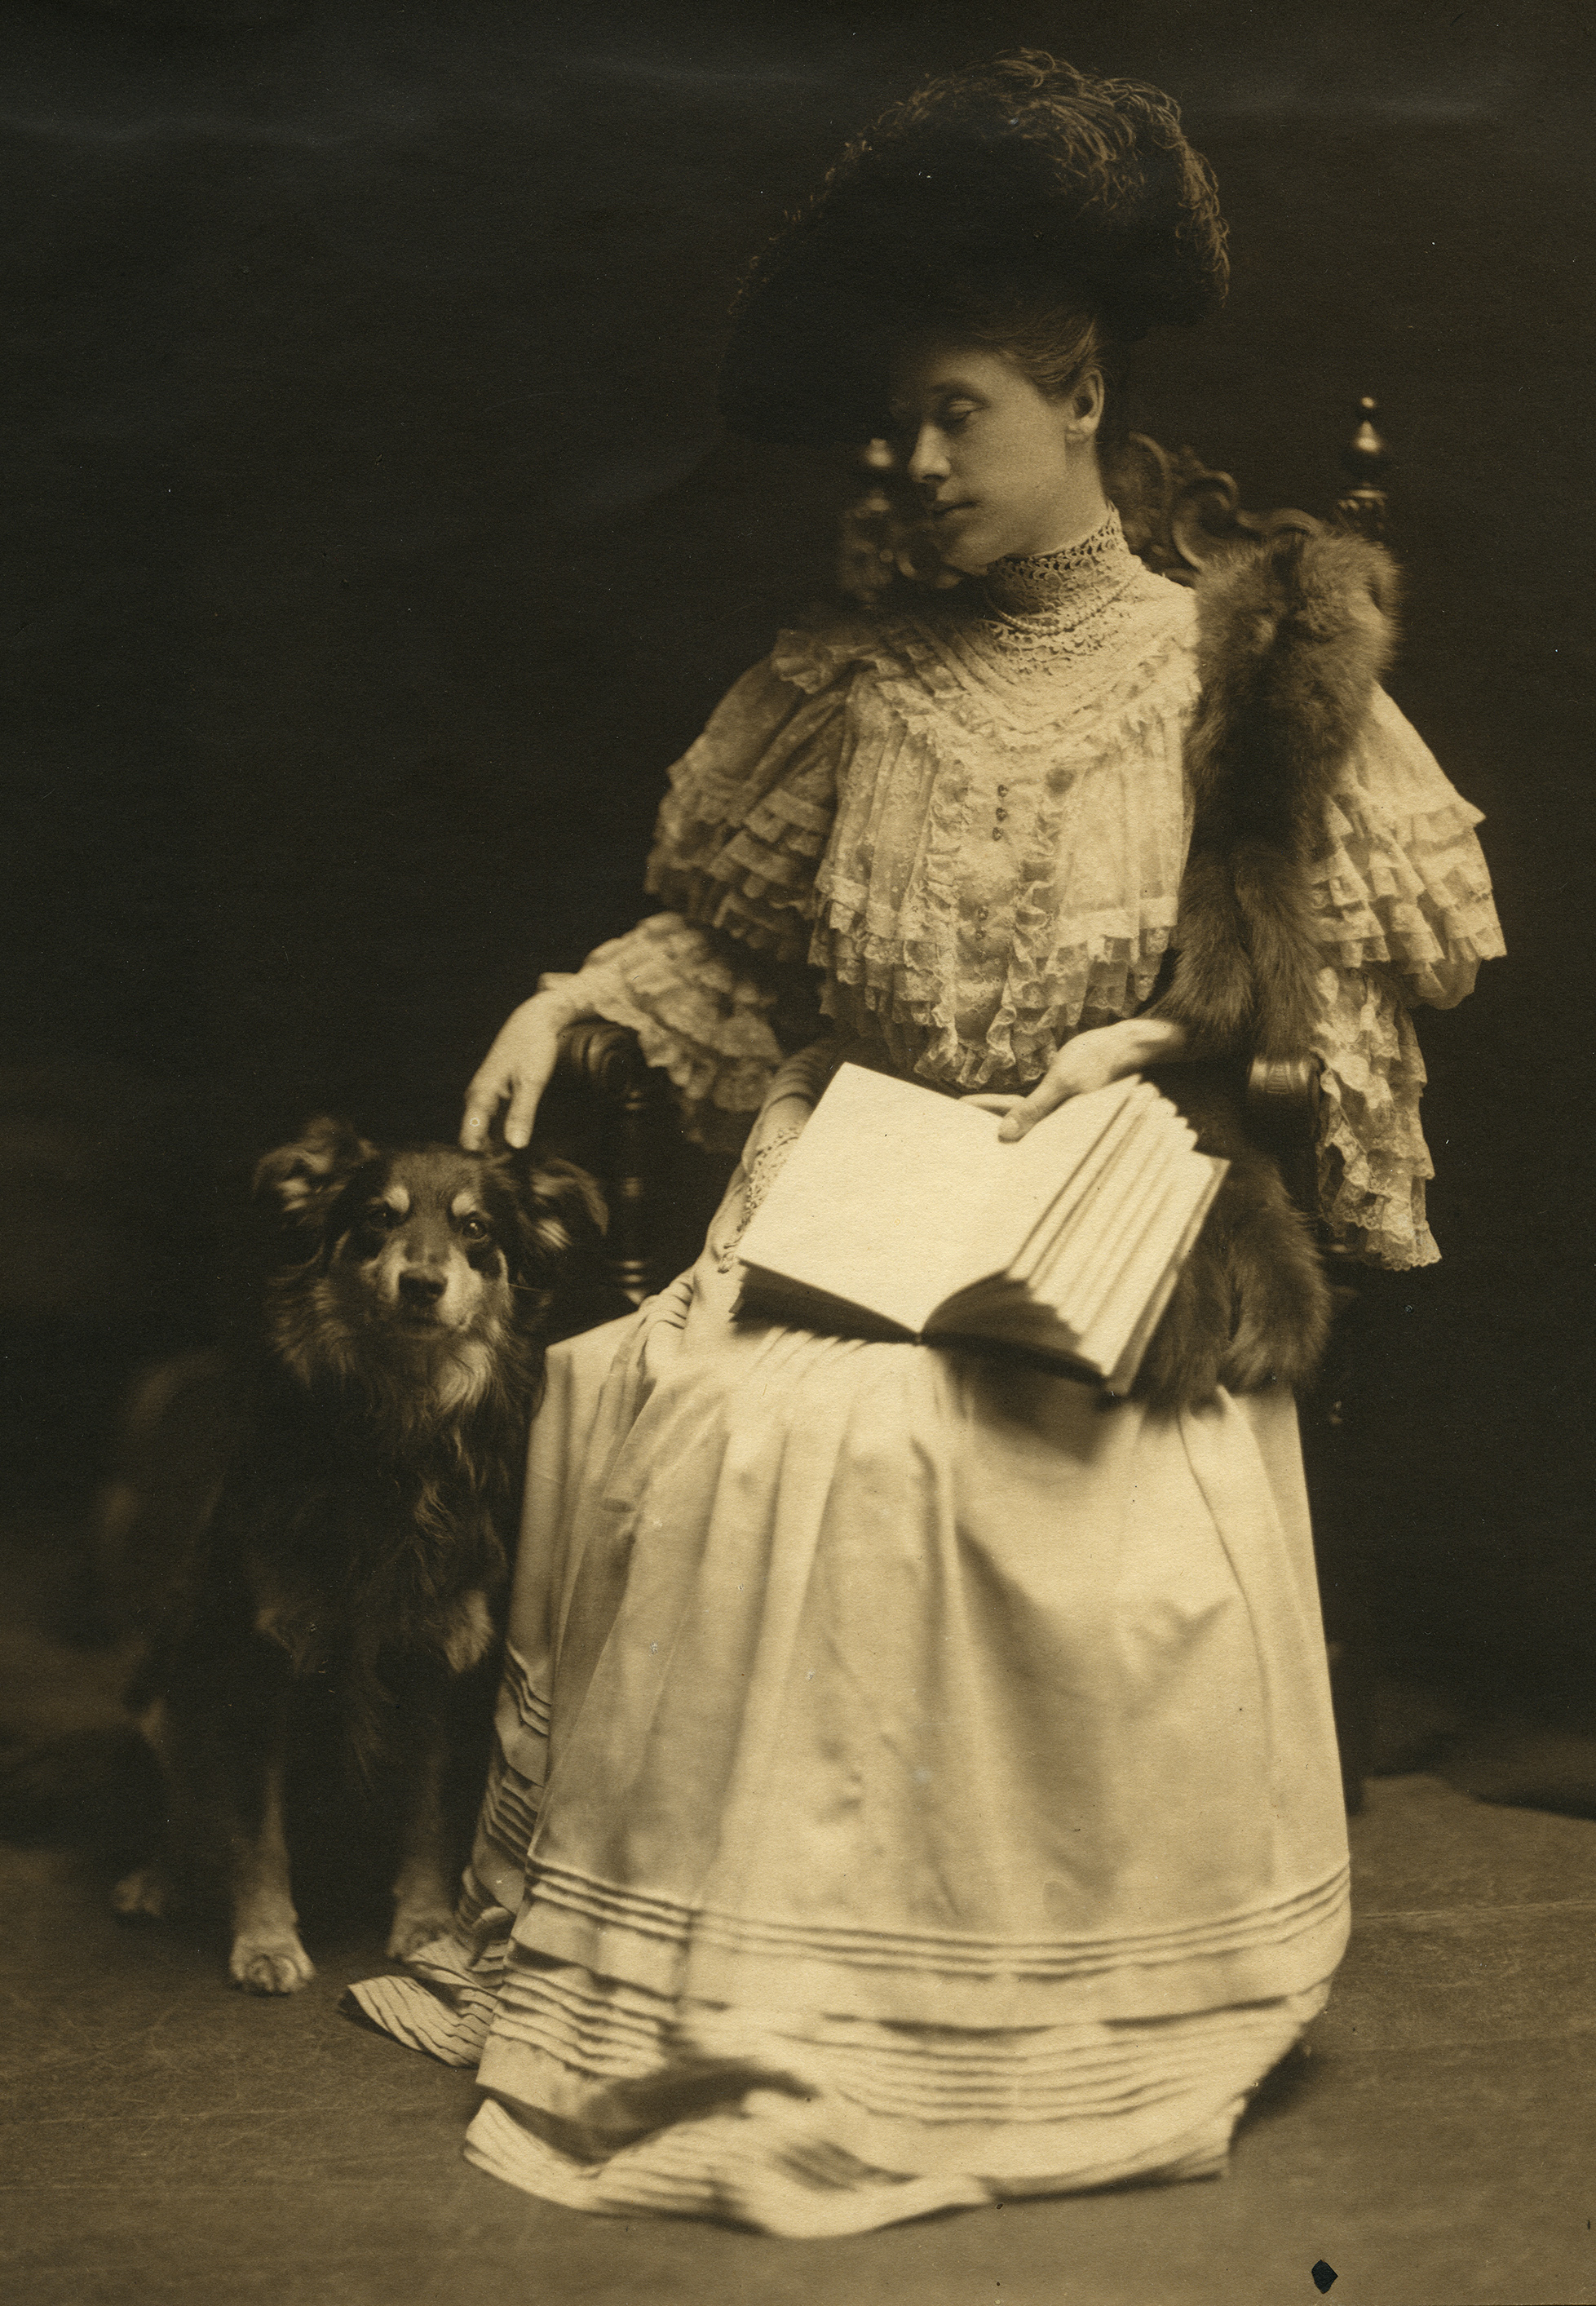 Image of Florence Porter Lyman with her dog (from the Lyman Family Papers)